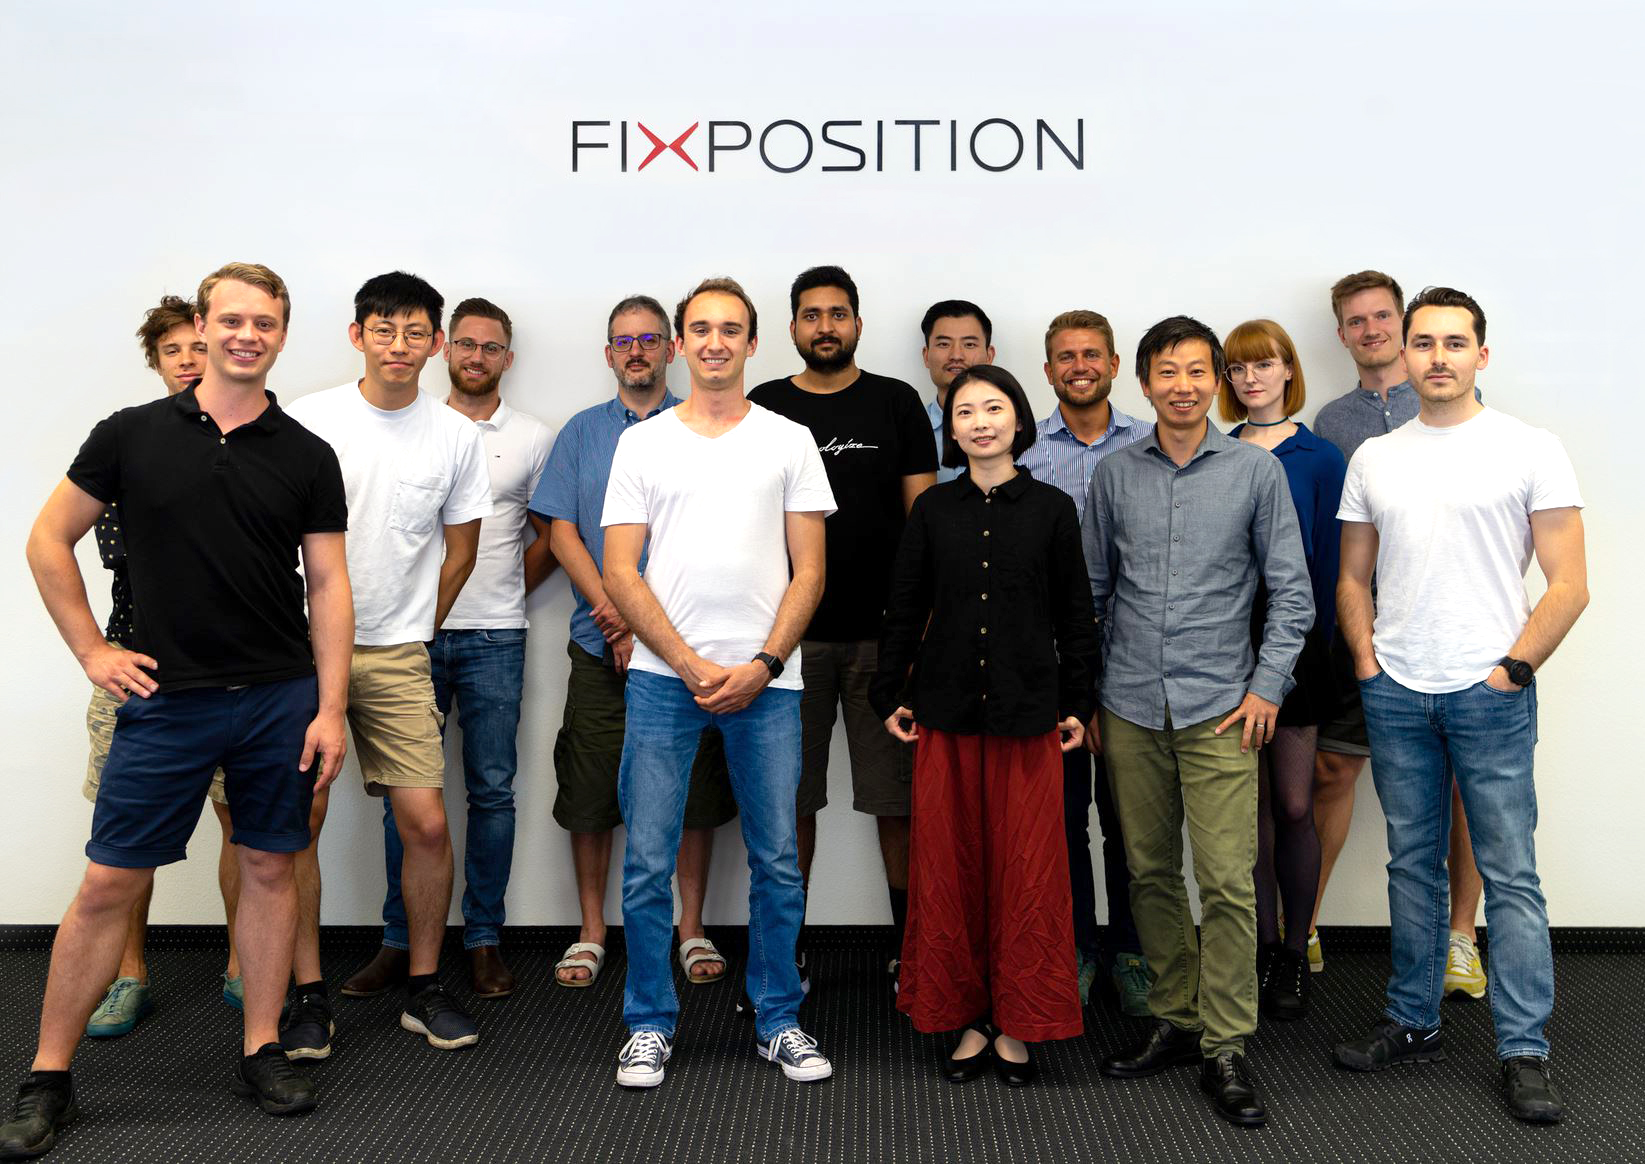 Fixposition team, Schlieren Switzerland 2020